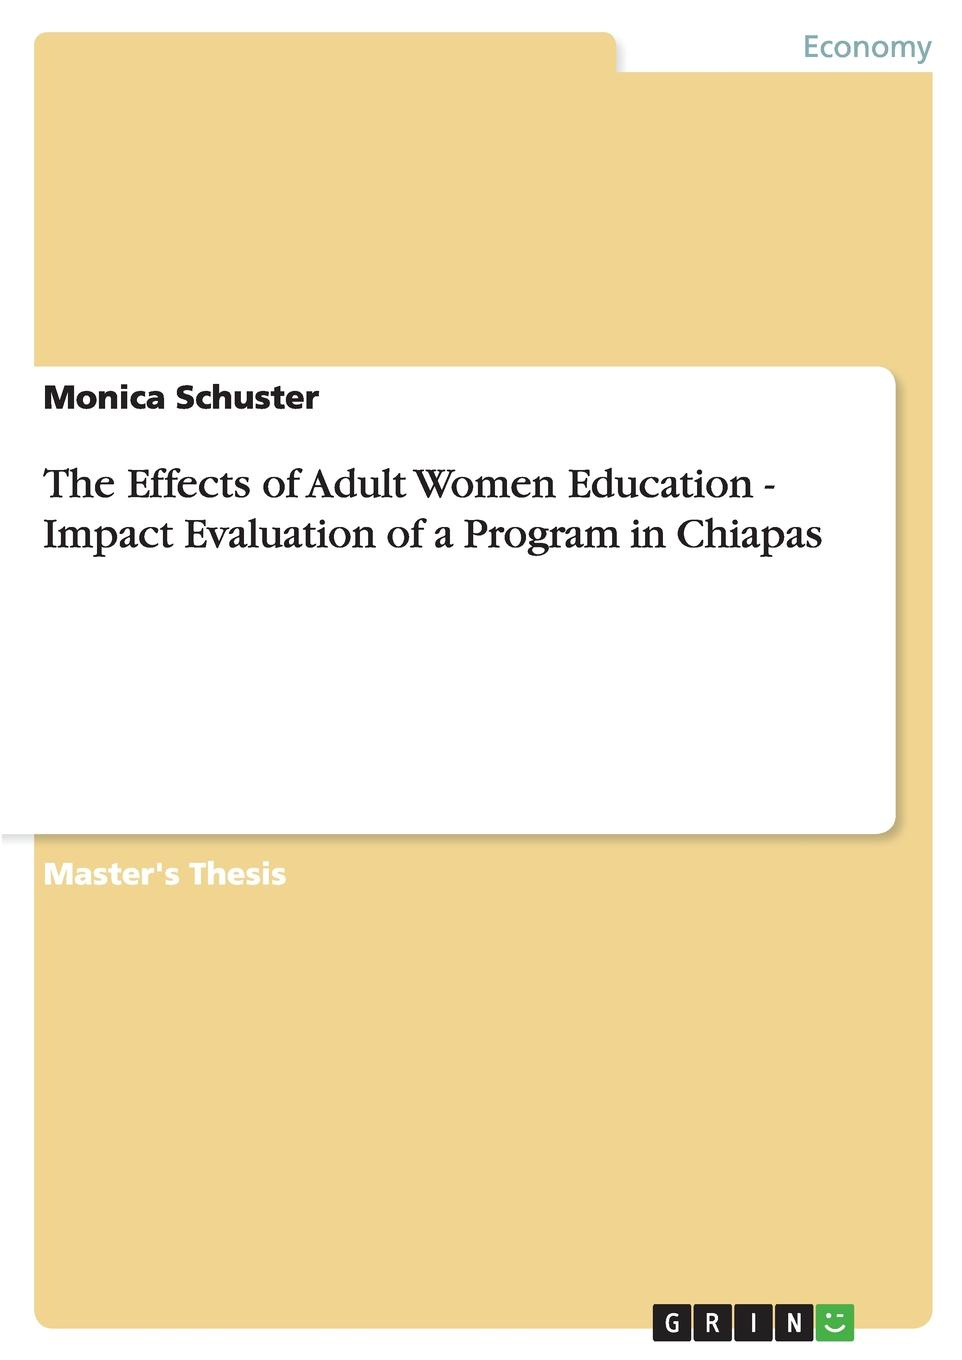 Monica Schuster The Effects of Adult Women Education - Impact Evaluation a Program in Chiapas